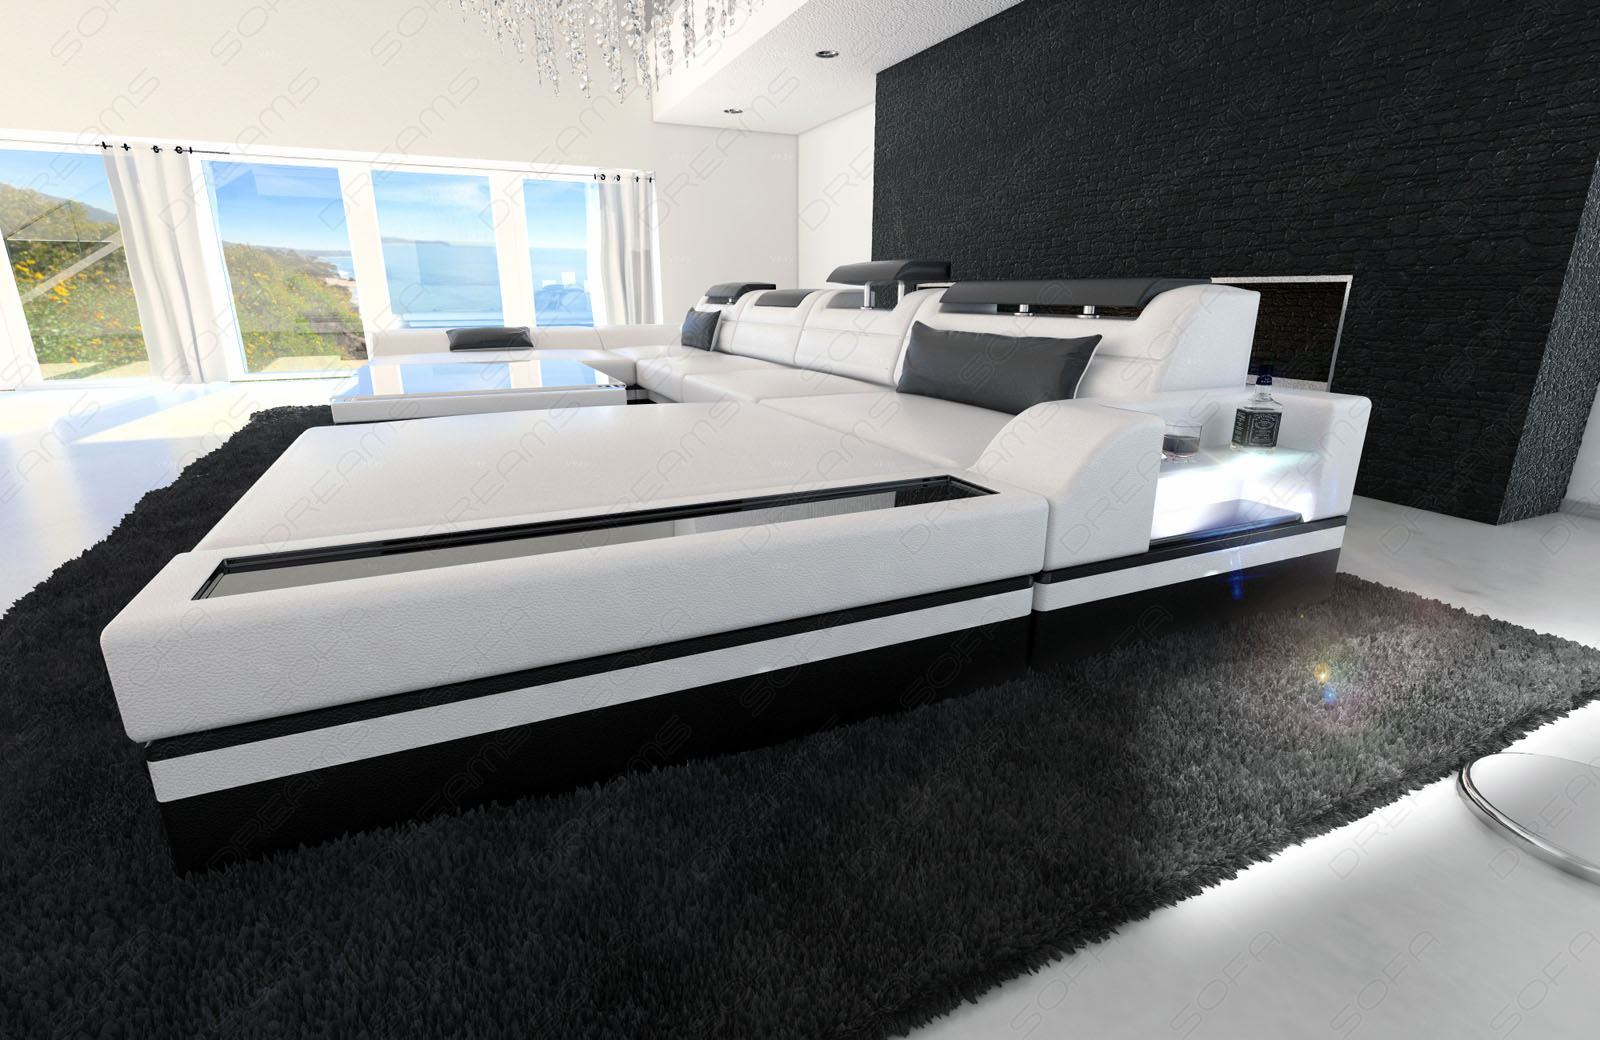 xxl leather sectional sofa monza u shaped cornersofa with. Black Bedroom Furniture Sets. Home Design Ideas